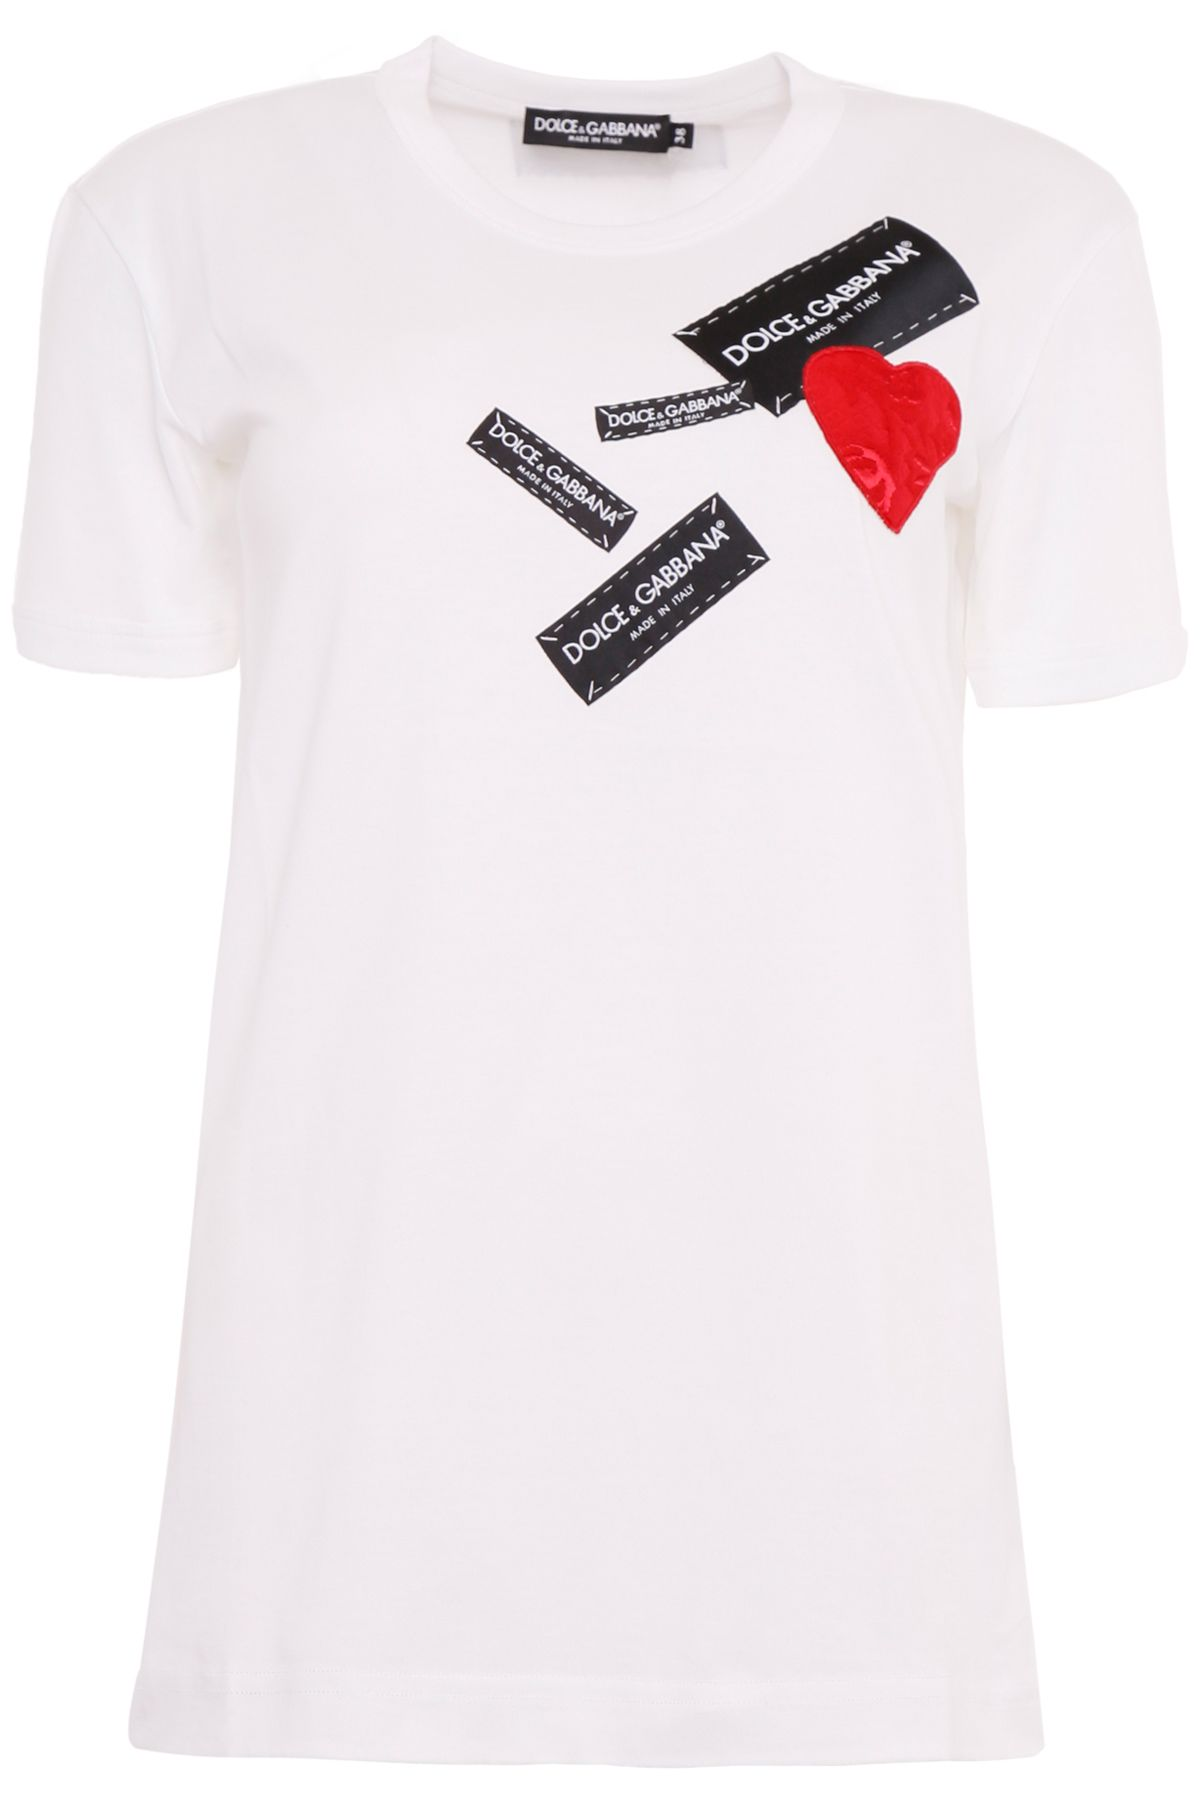 Short-Sleeve Jersey T-Shirt With Tag Heart Applique in W0800 White